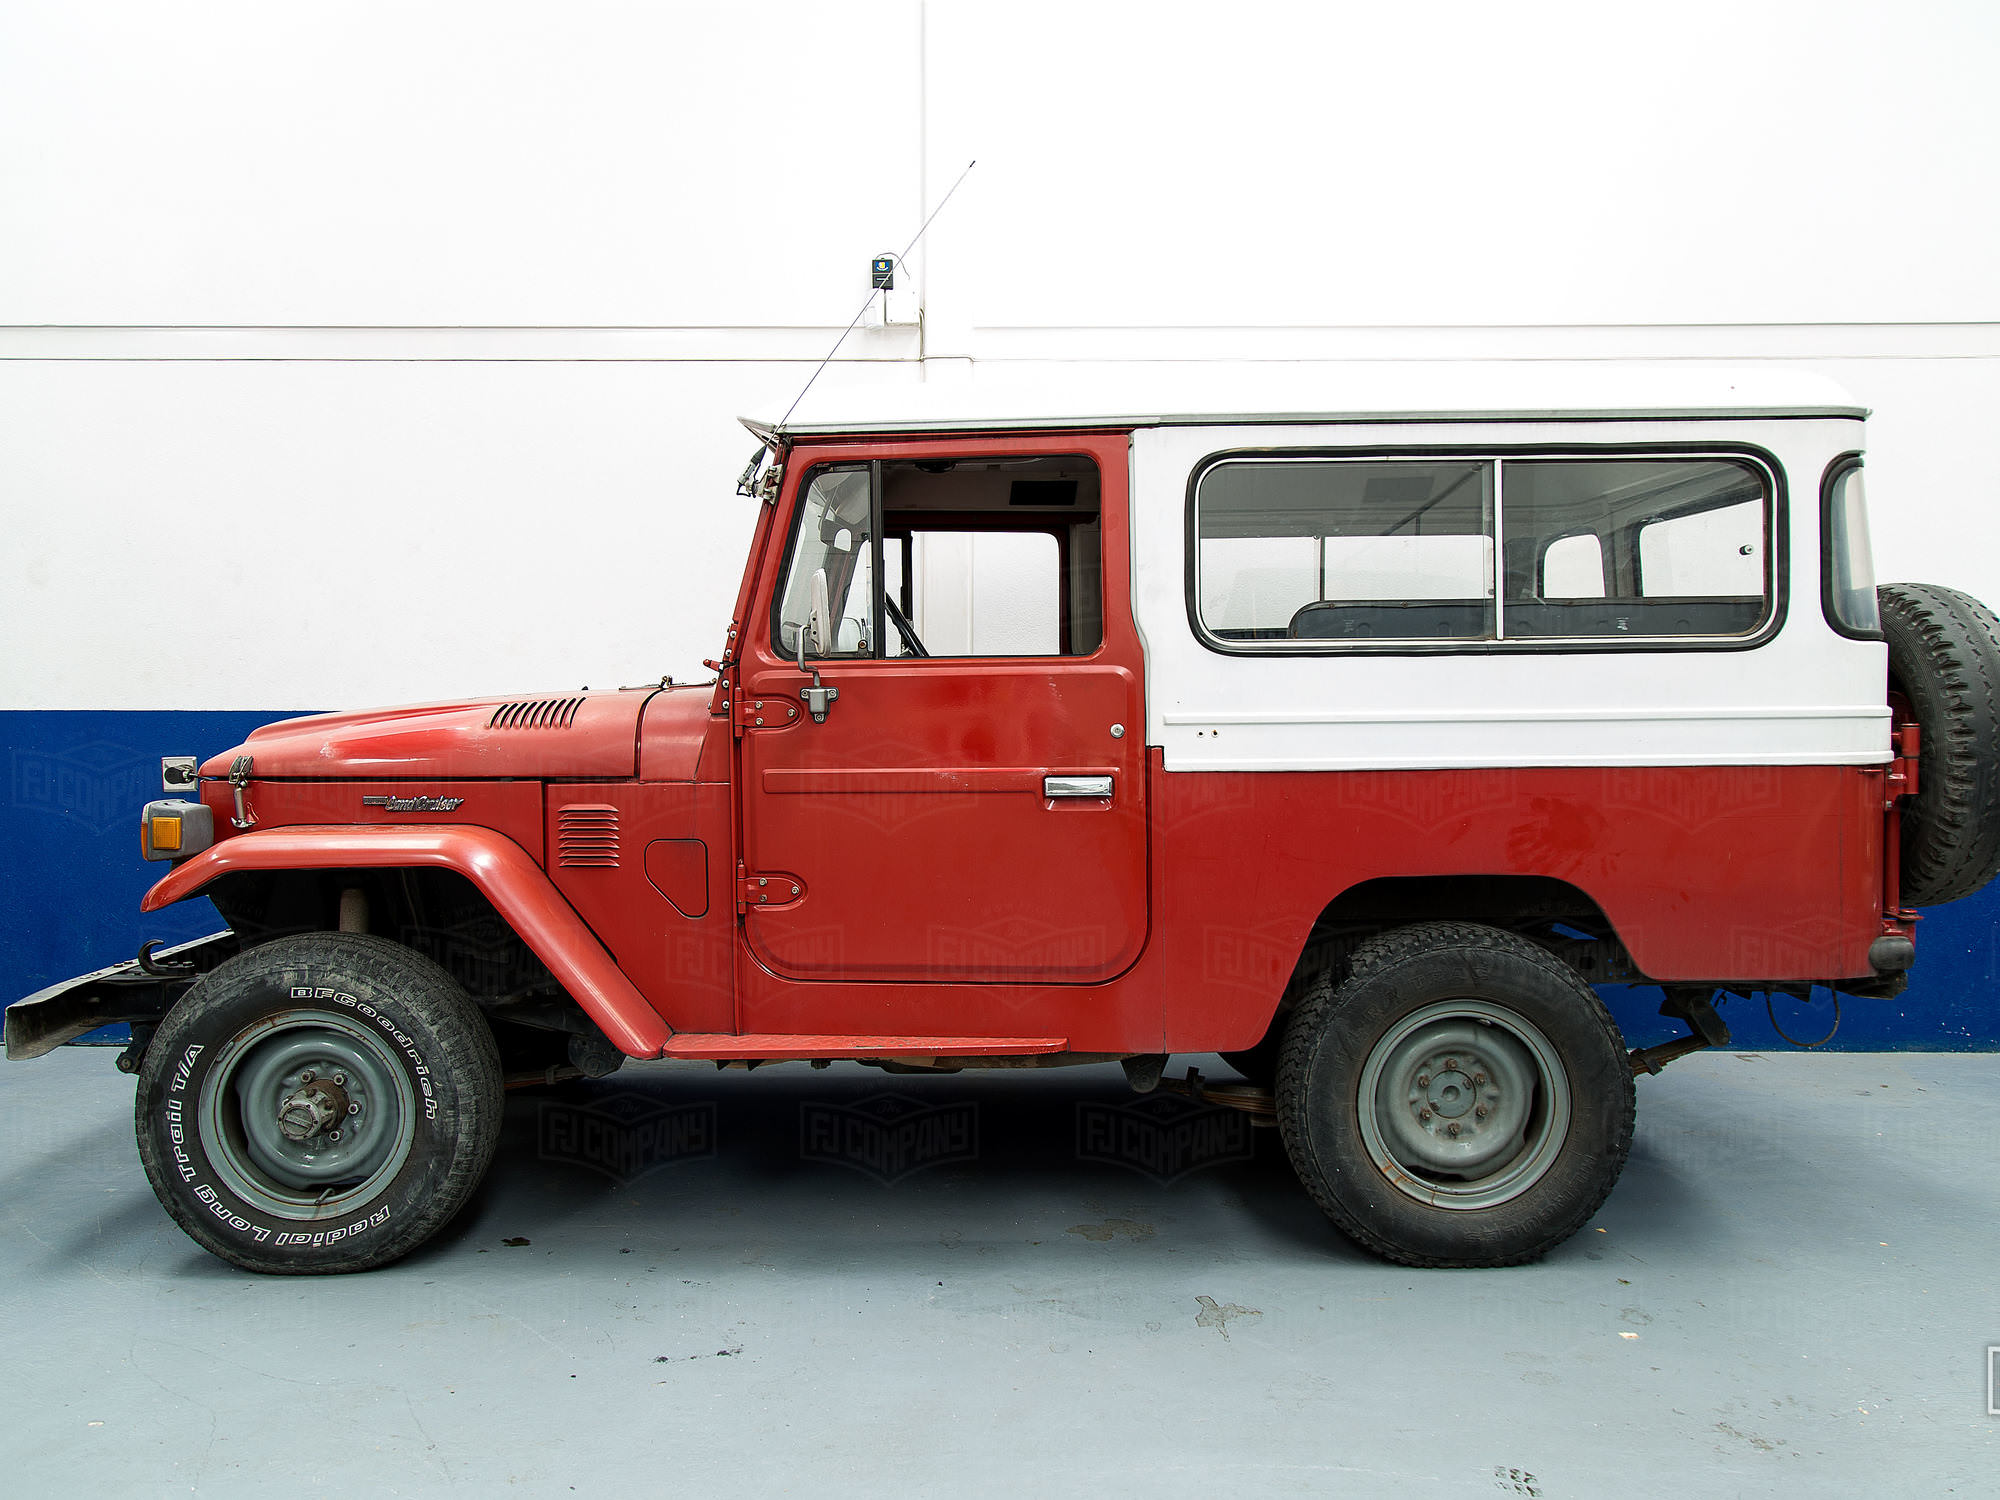 Beautiful Freeborn Red FJ43 Land Cruiser